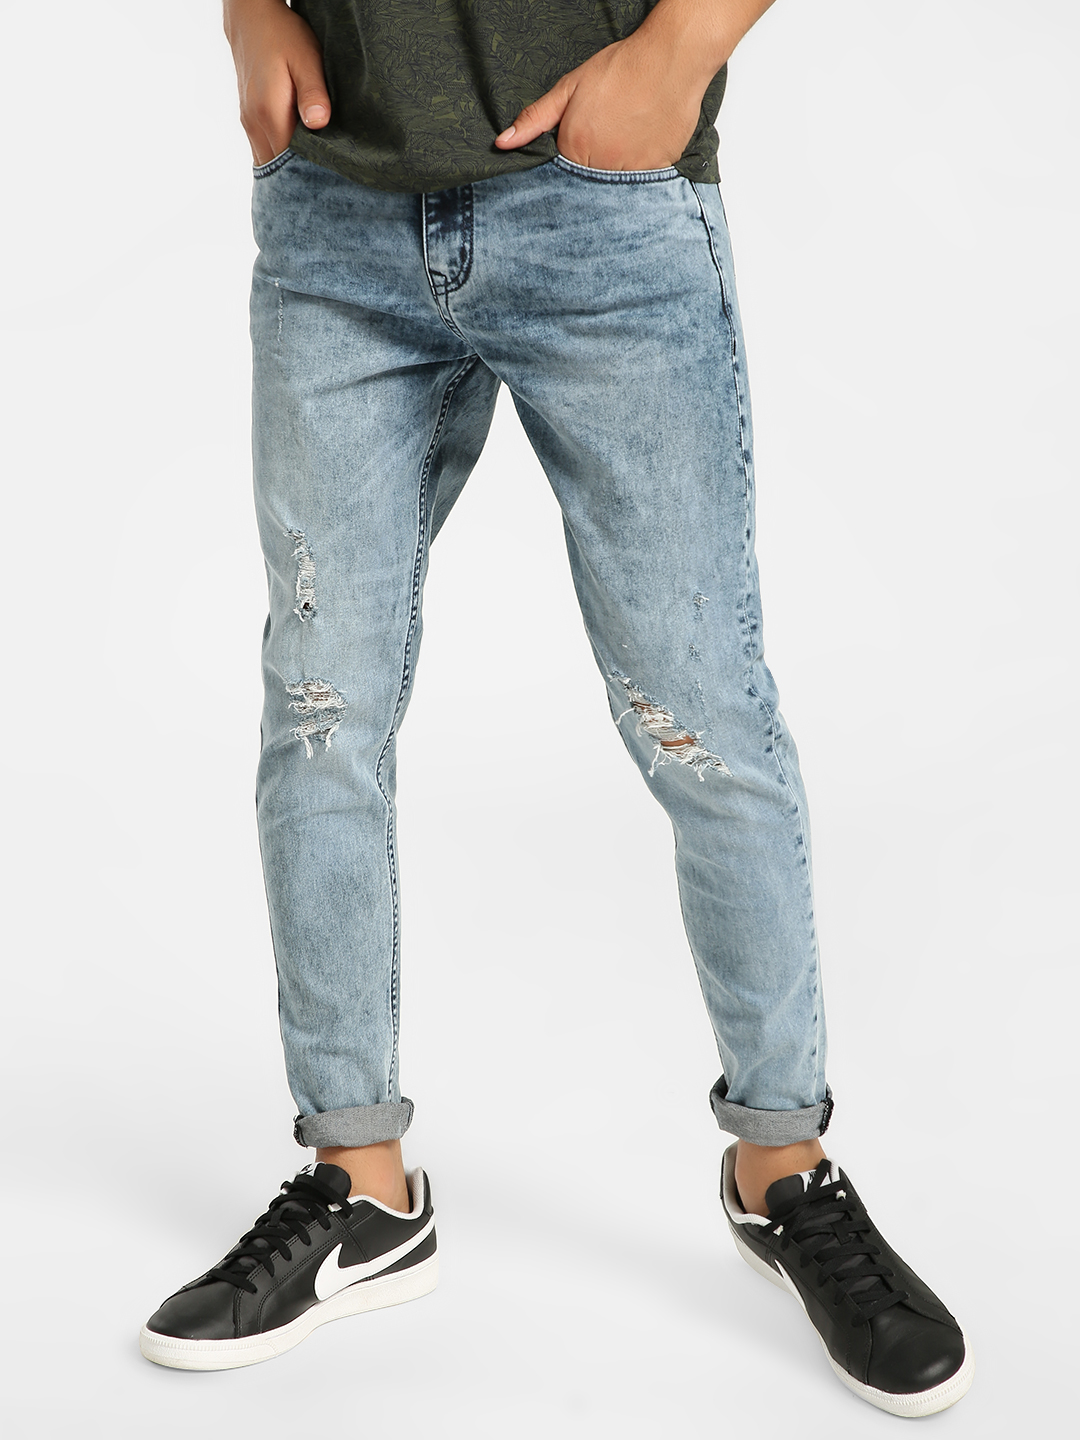 K Denim Blue KOOVS Acid Wash Distressed Skinny Jeans 1